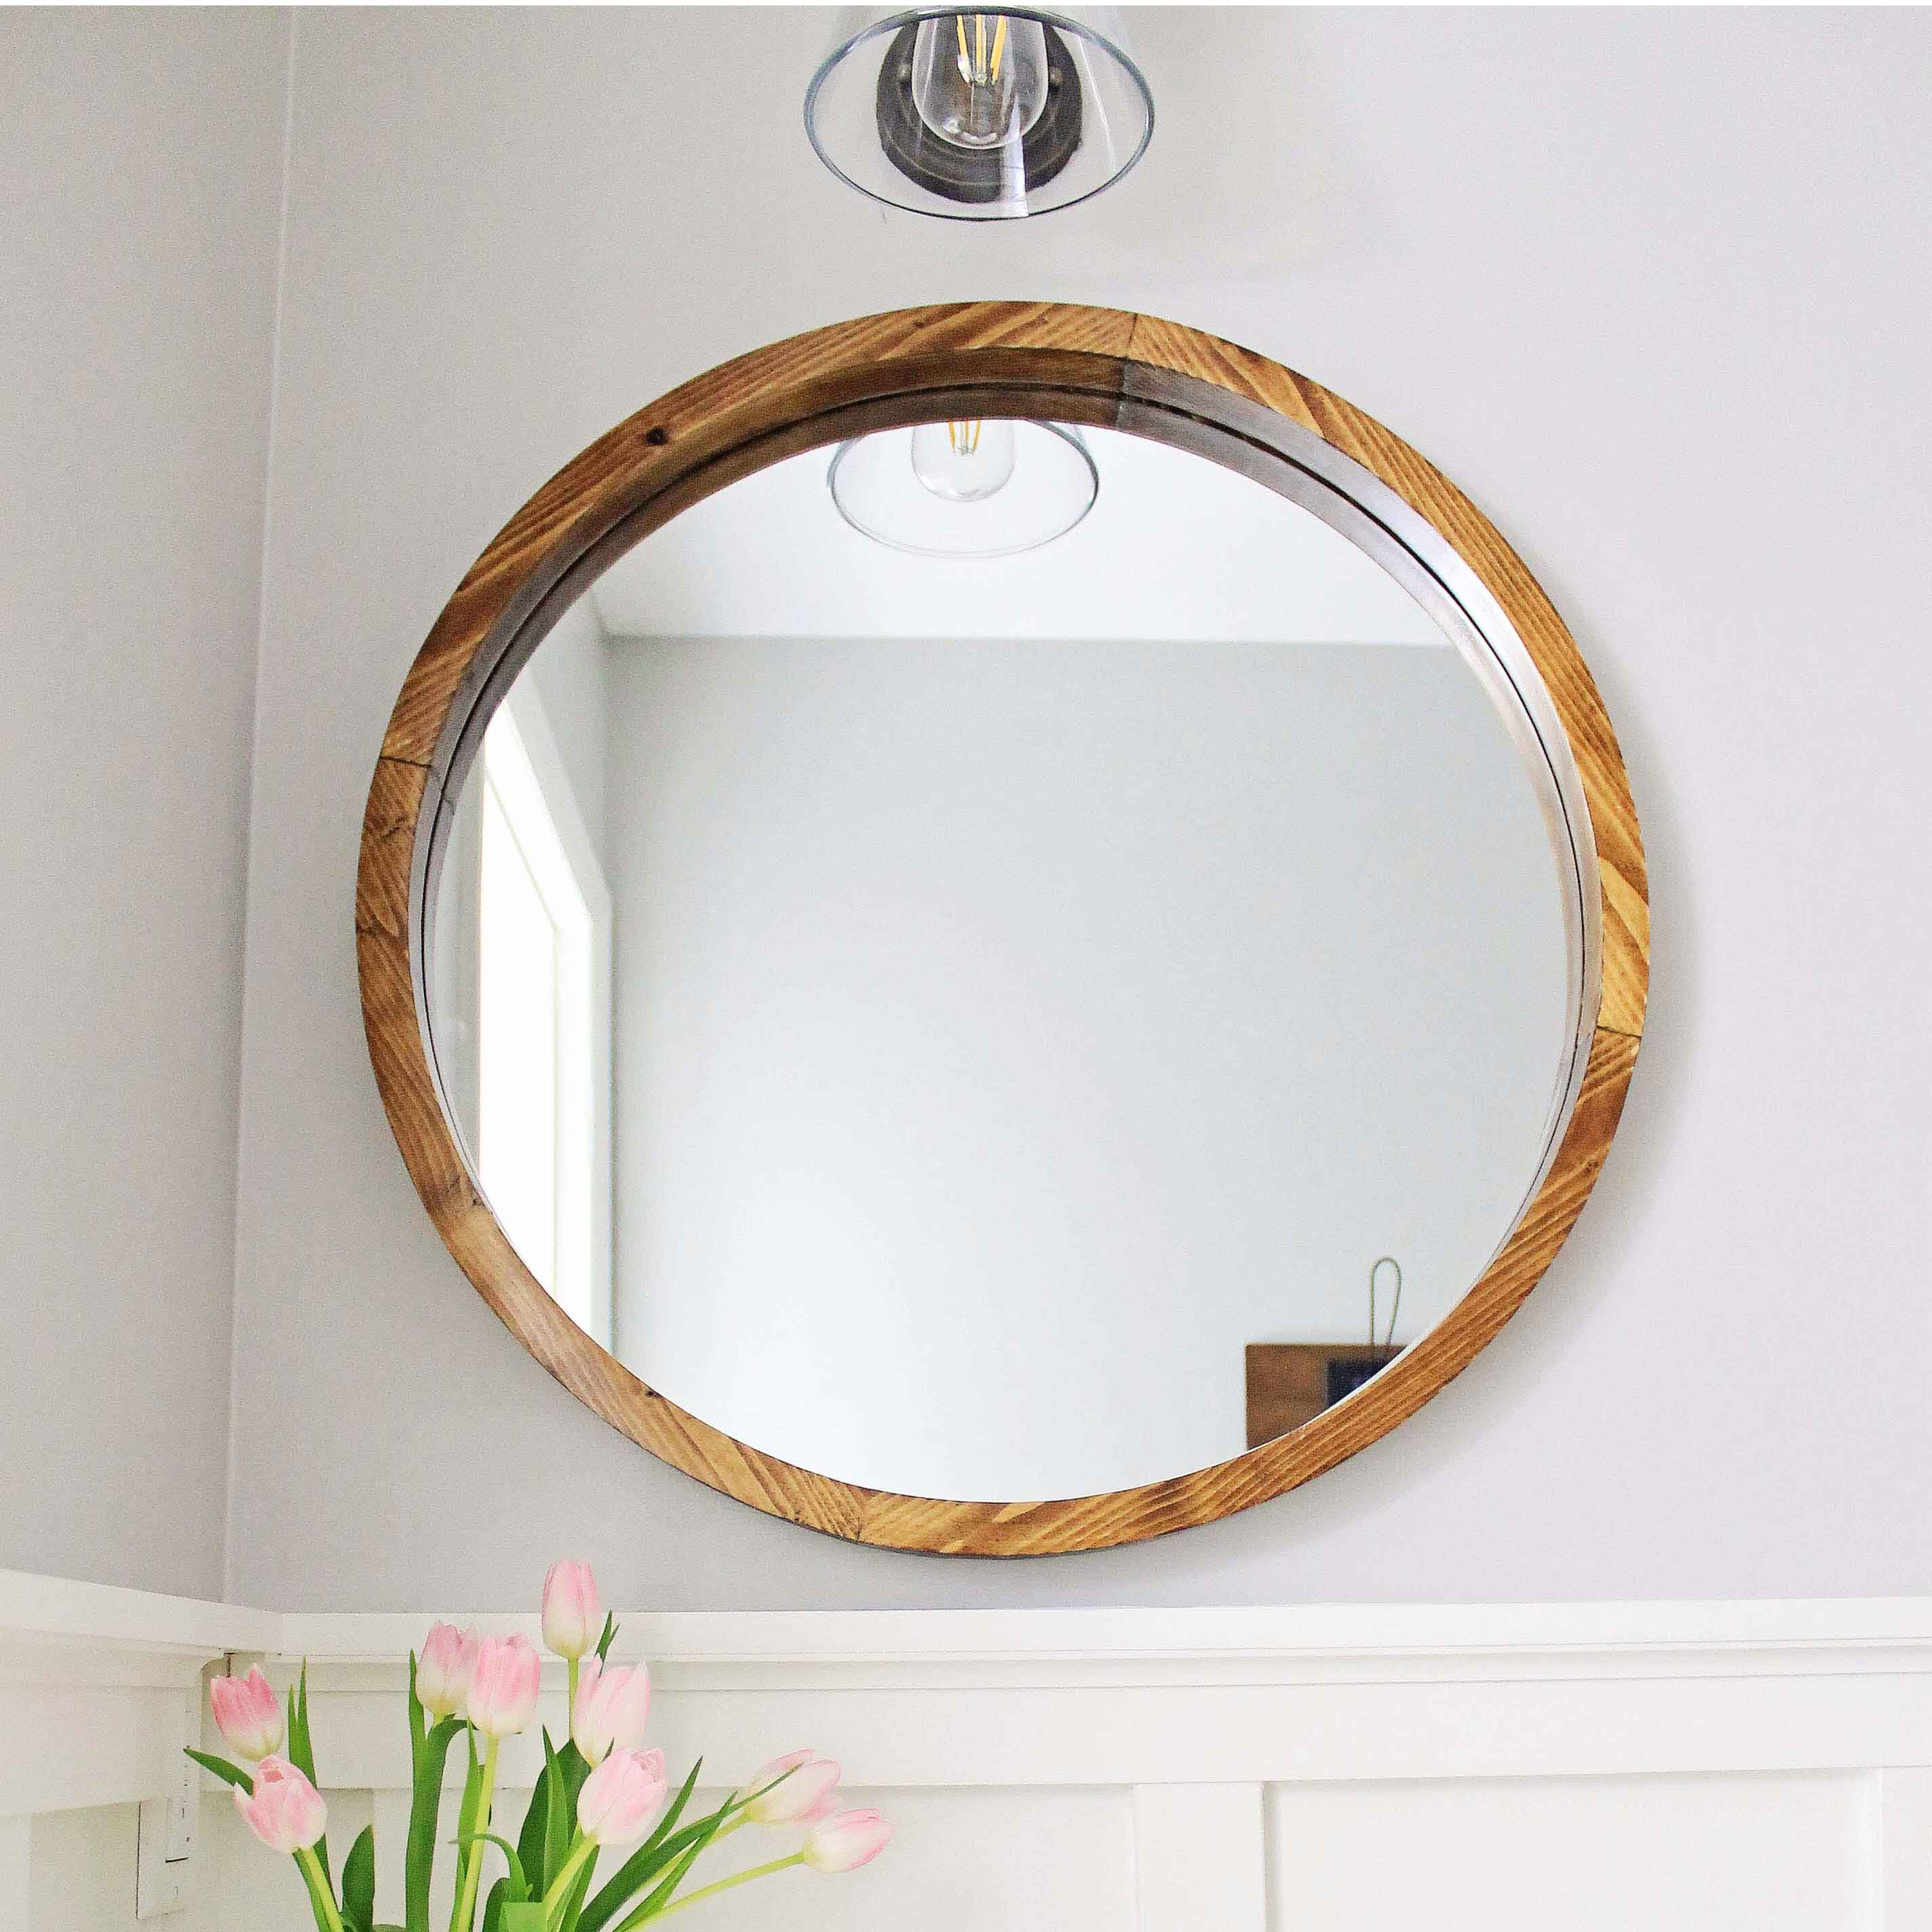 Buy Round Mirror Round Wood Mirror Diy Angela Marie Made